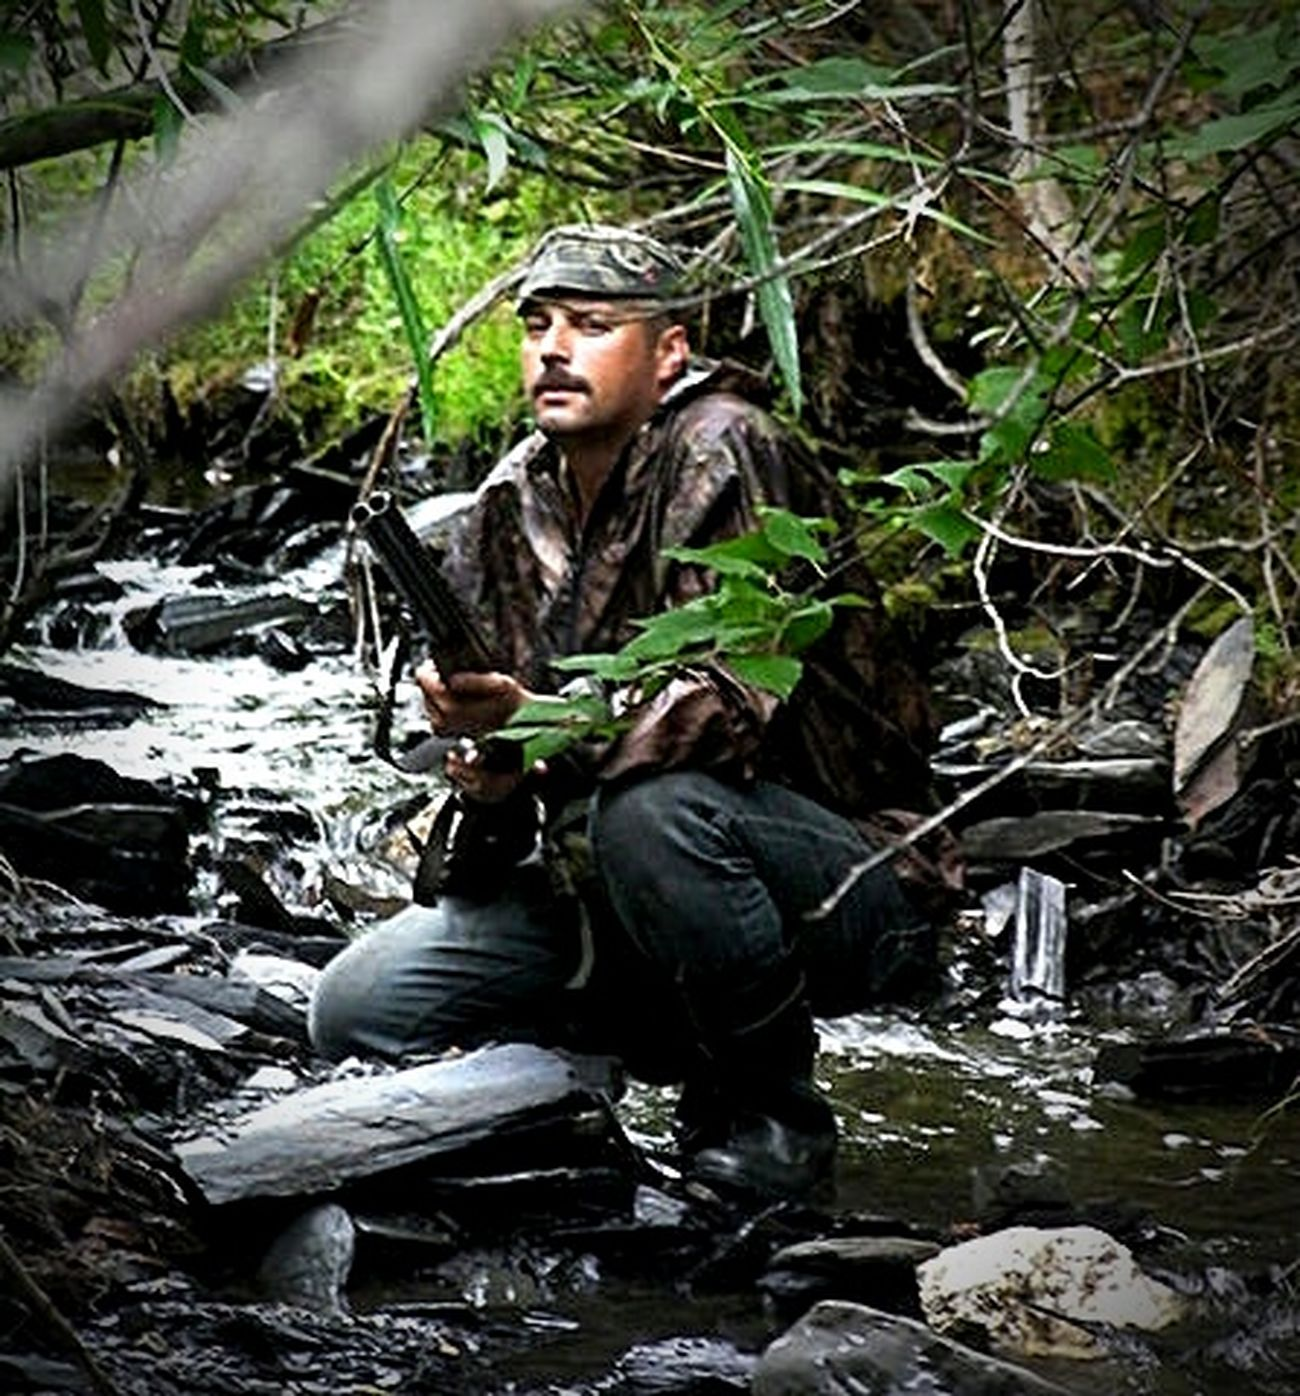 The Adventure Handbook Check This Out Yakutia Ynykchan Nature Hunting Hunter Hunt Summer On The River Enjoying Life